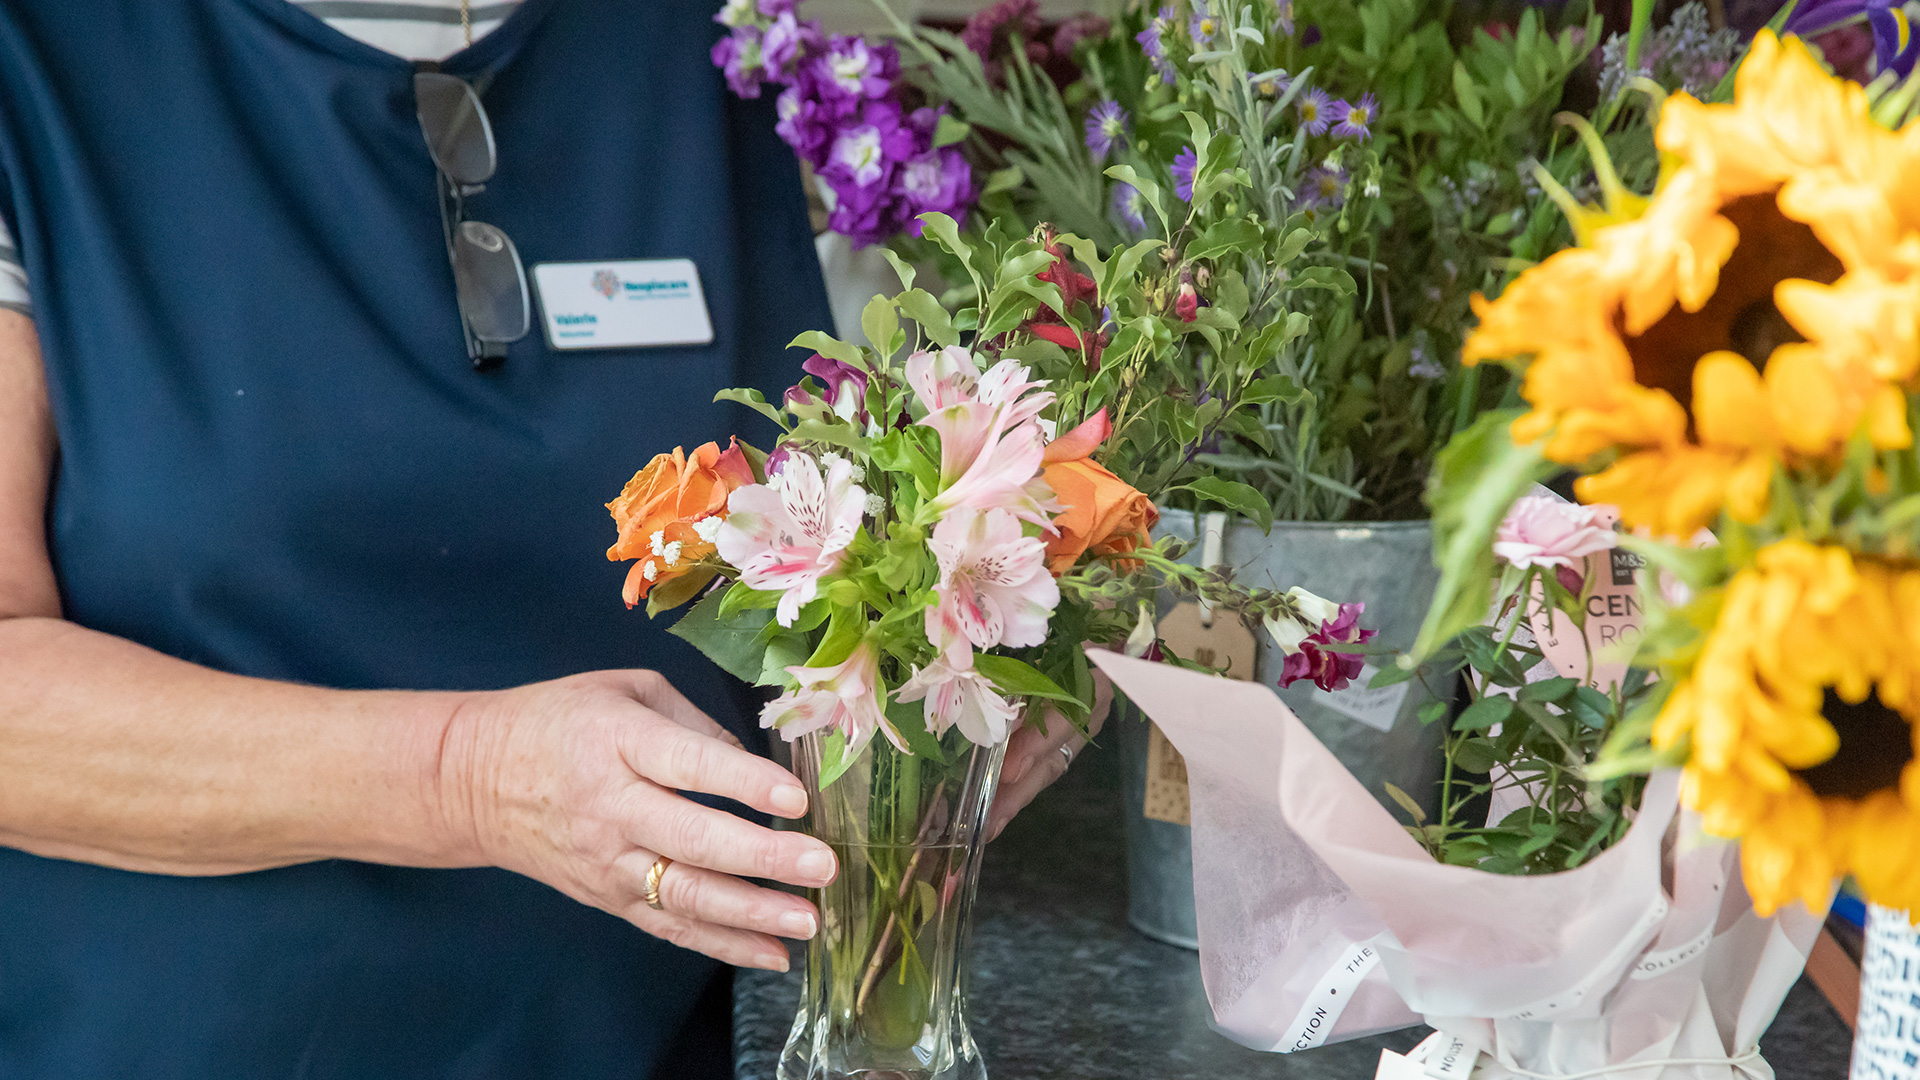 Funeral collections and flower donations